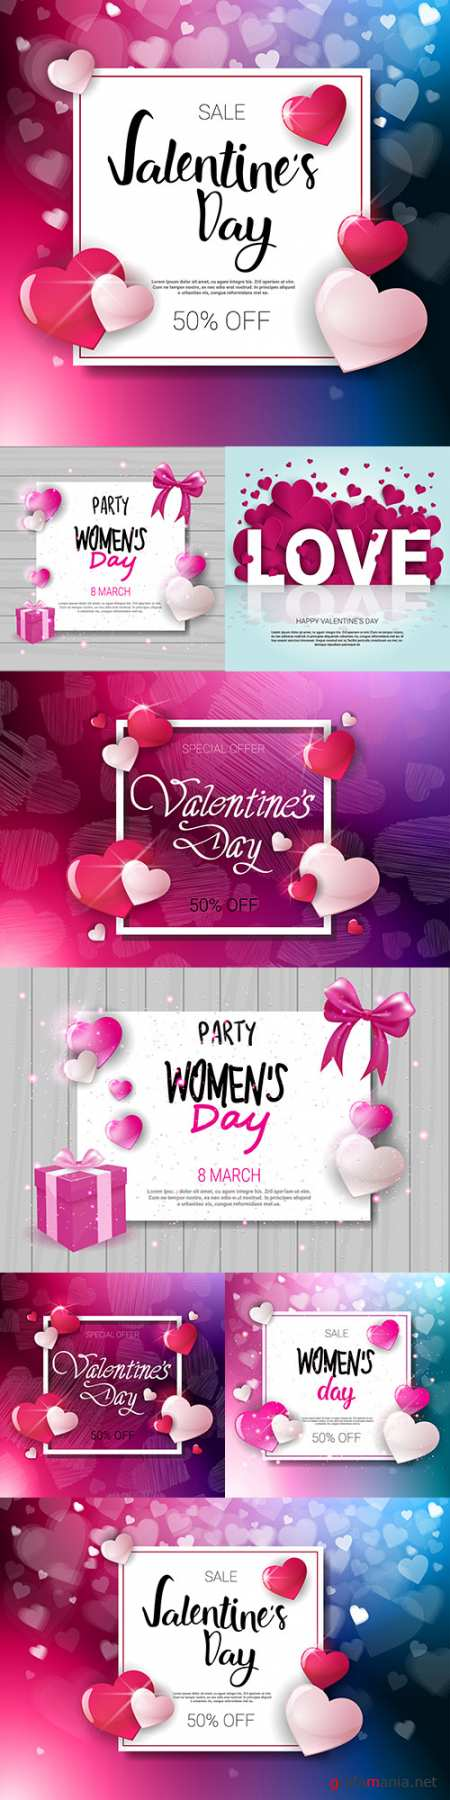 Valentine and Women's Day celebration design banner